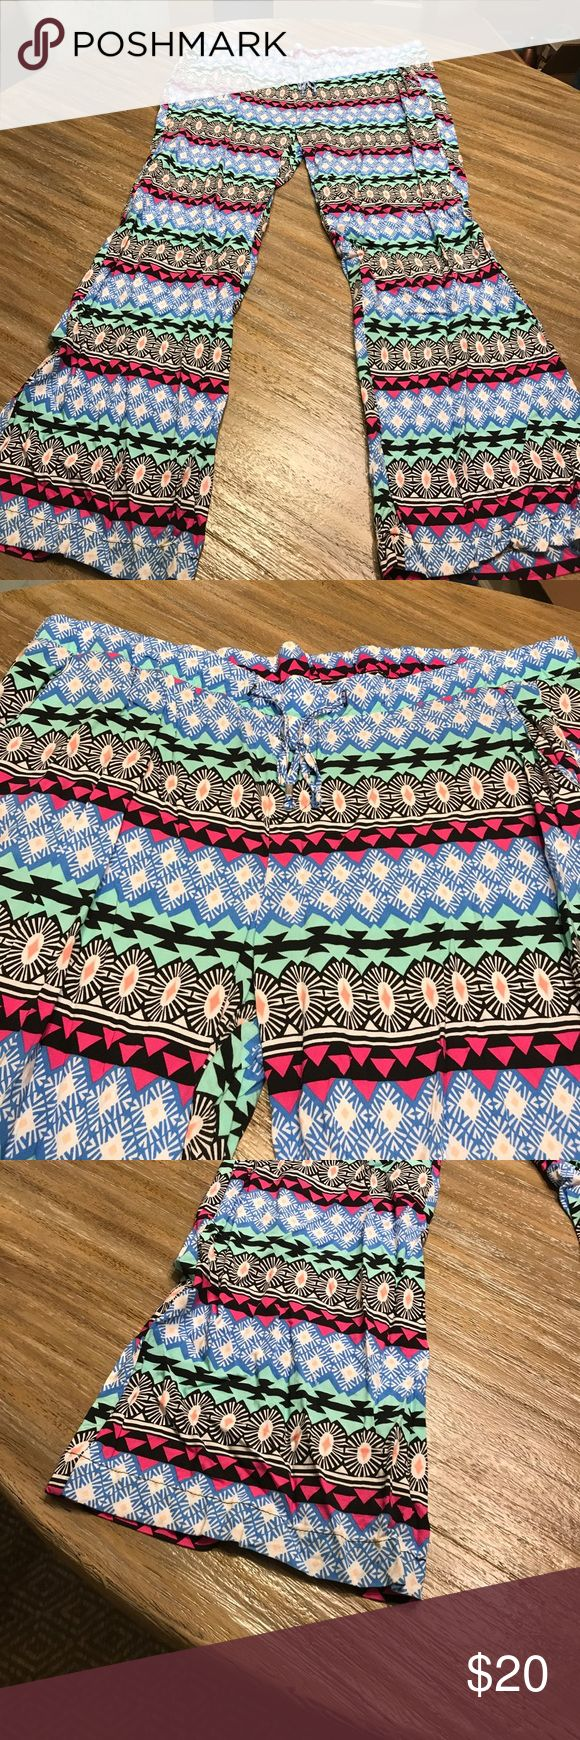 Aztec wide leg pants!! Wide leg aztec printed pants! Has drawstring elastic waist and flowy at bottom! Vibrant colors! Pink, robins egg blue, black and teal!! Old Navy Pants Wide Leg